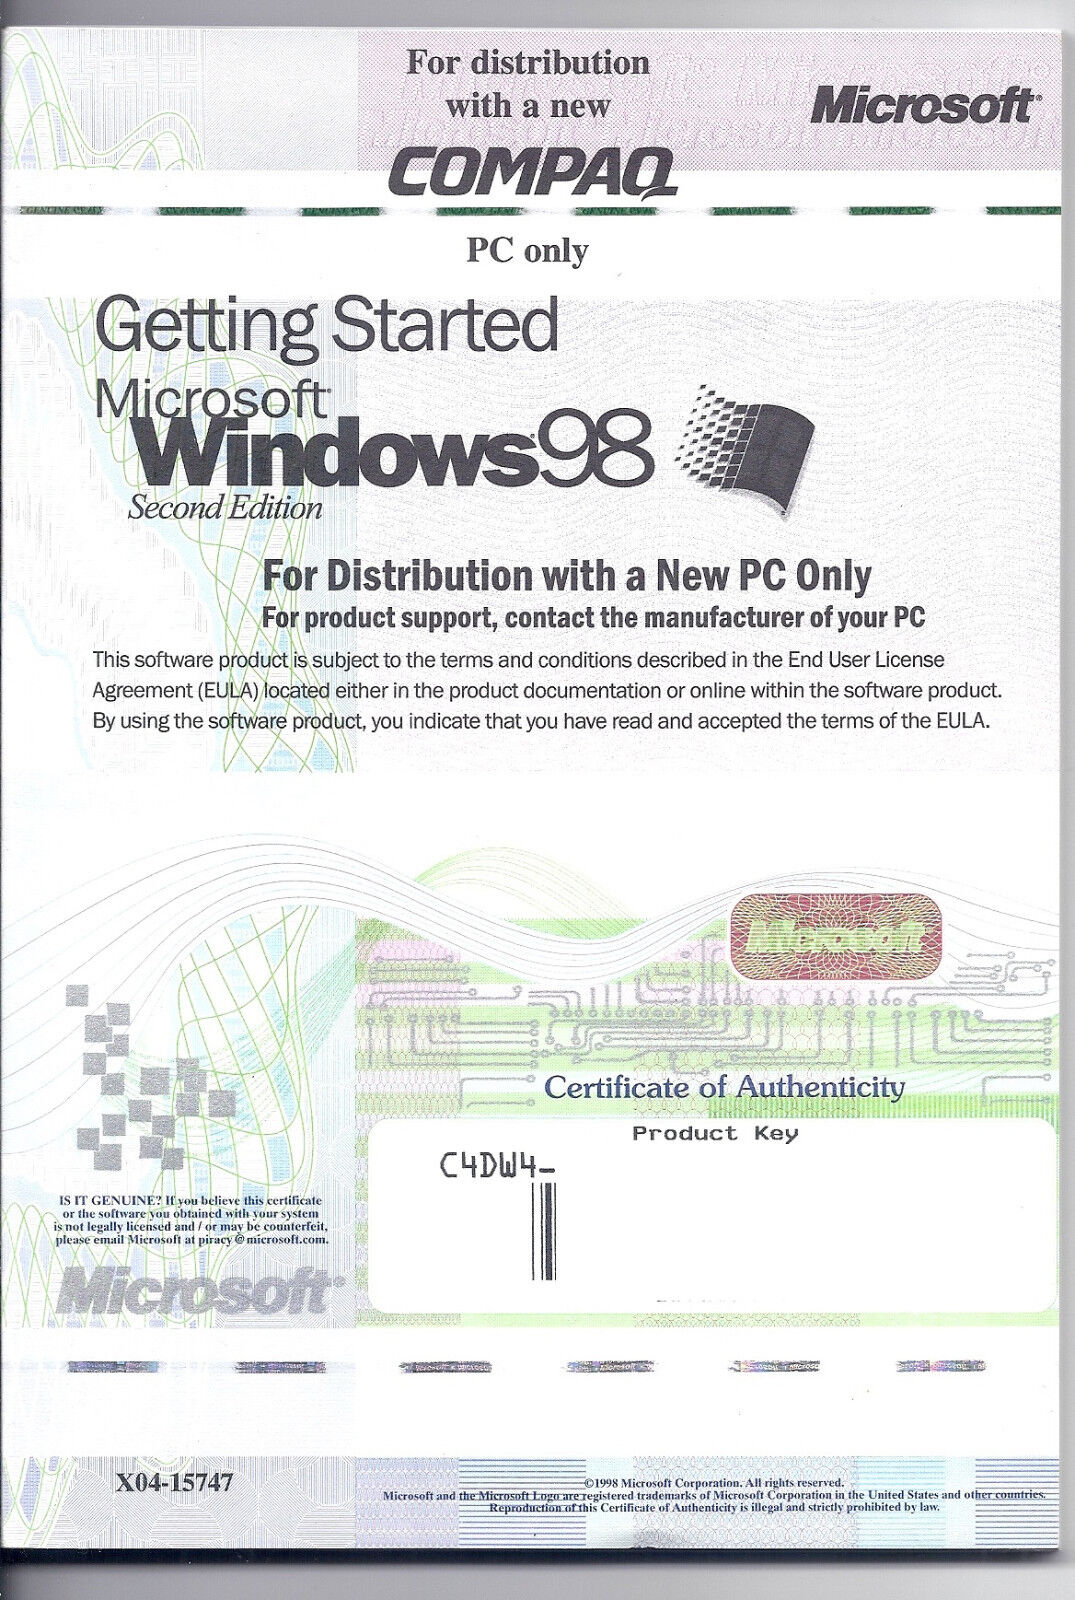 Getting Started Microsoft Windows 98 Manual Booklet With Product Key - $4.99